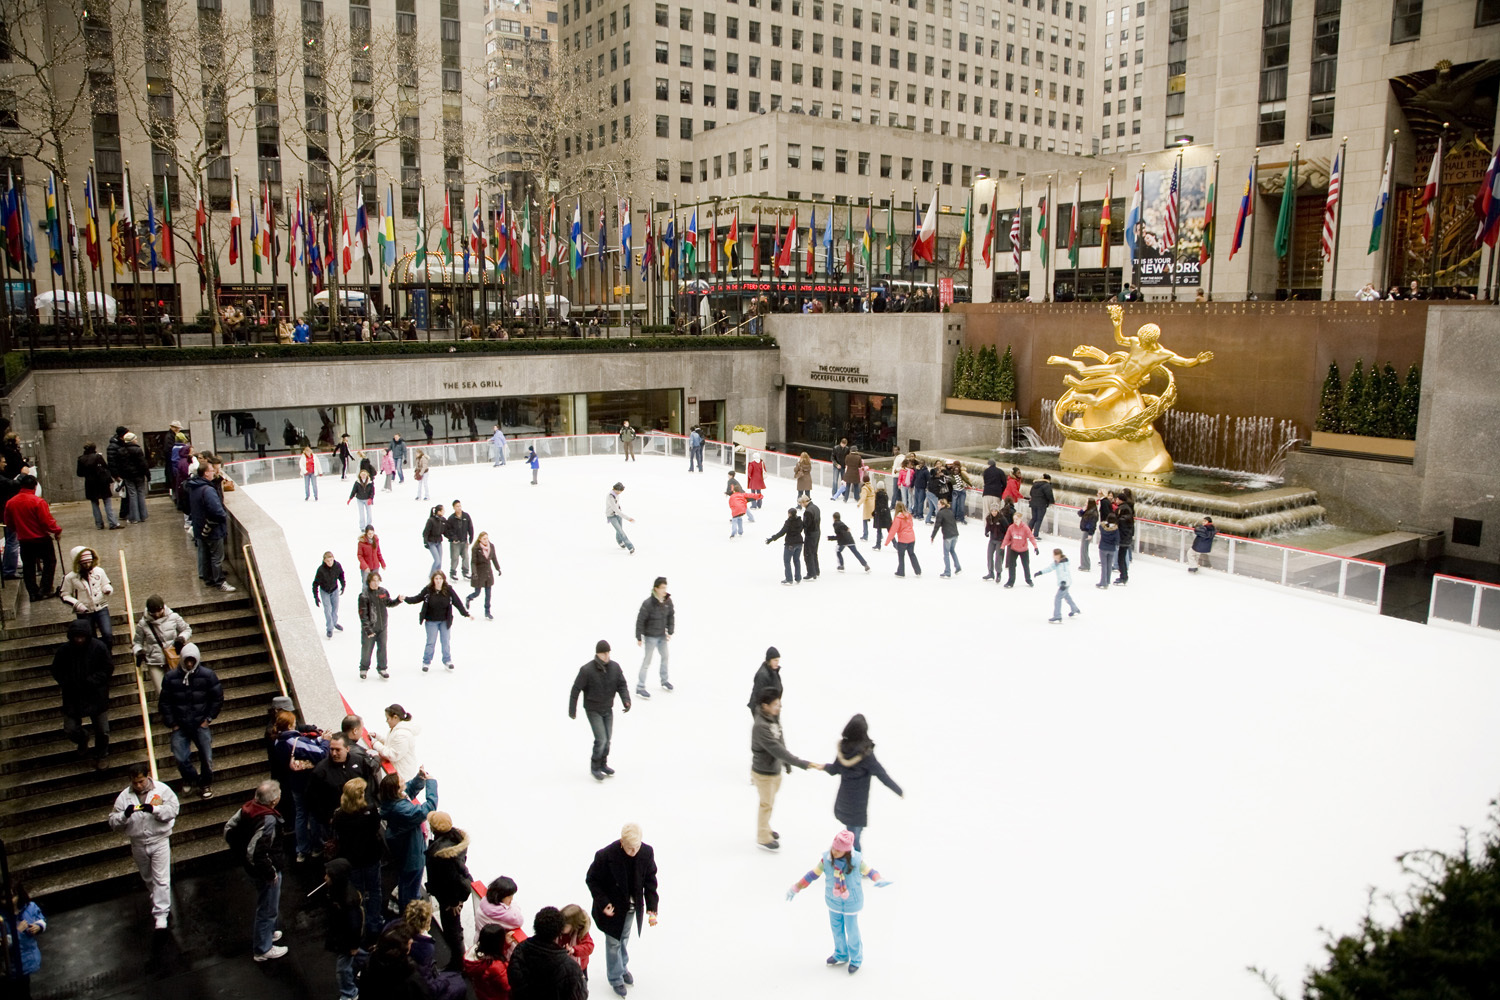 Things to Do: The Rink at Rockefeller Center